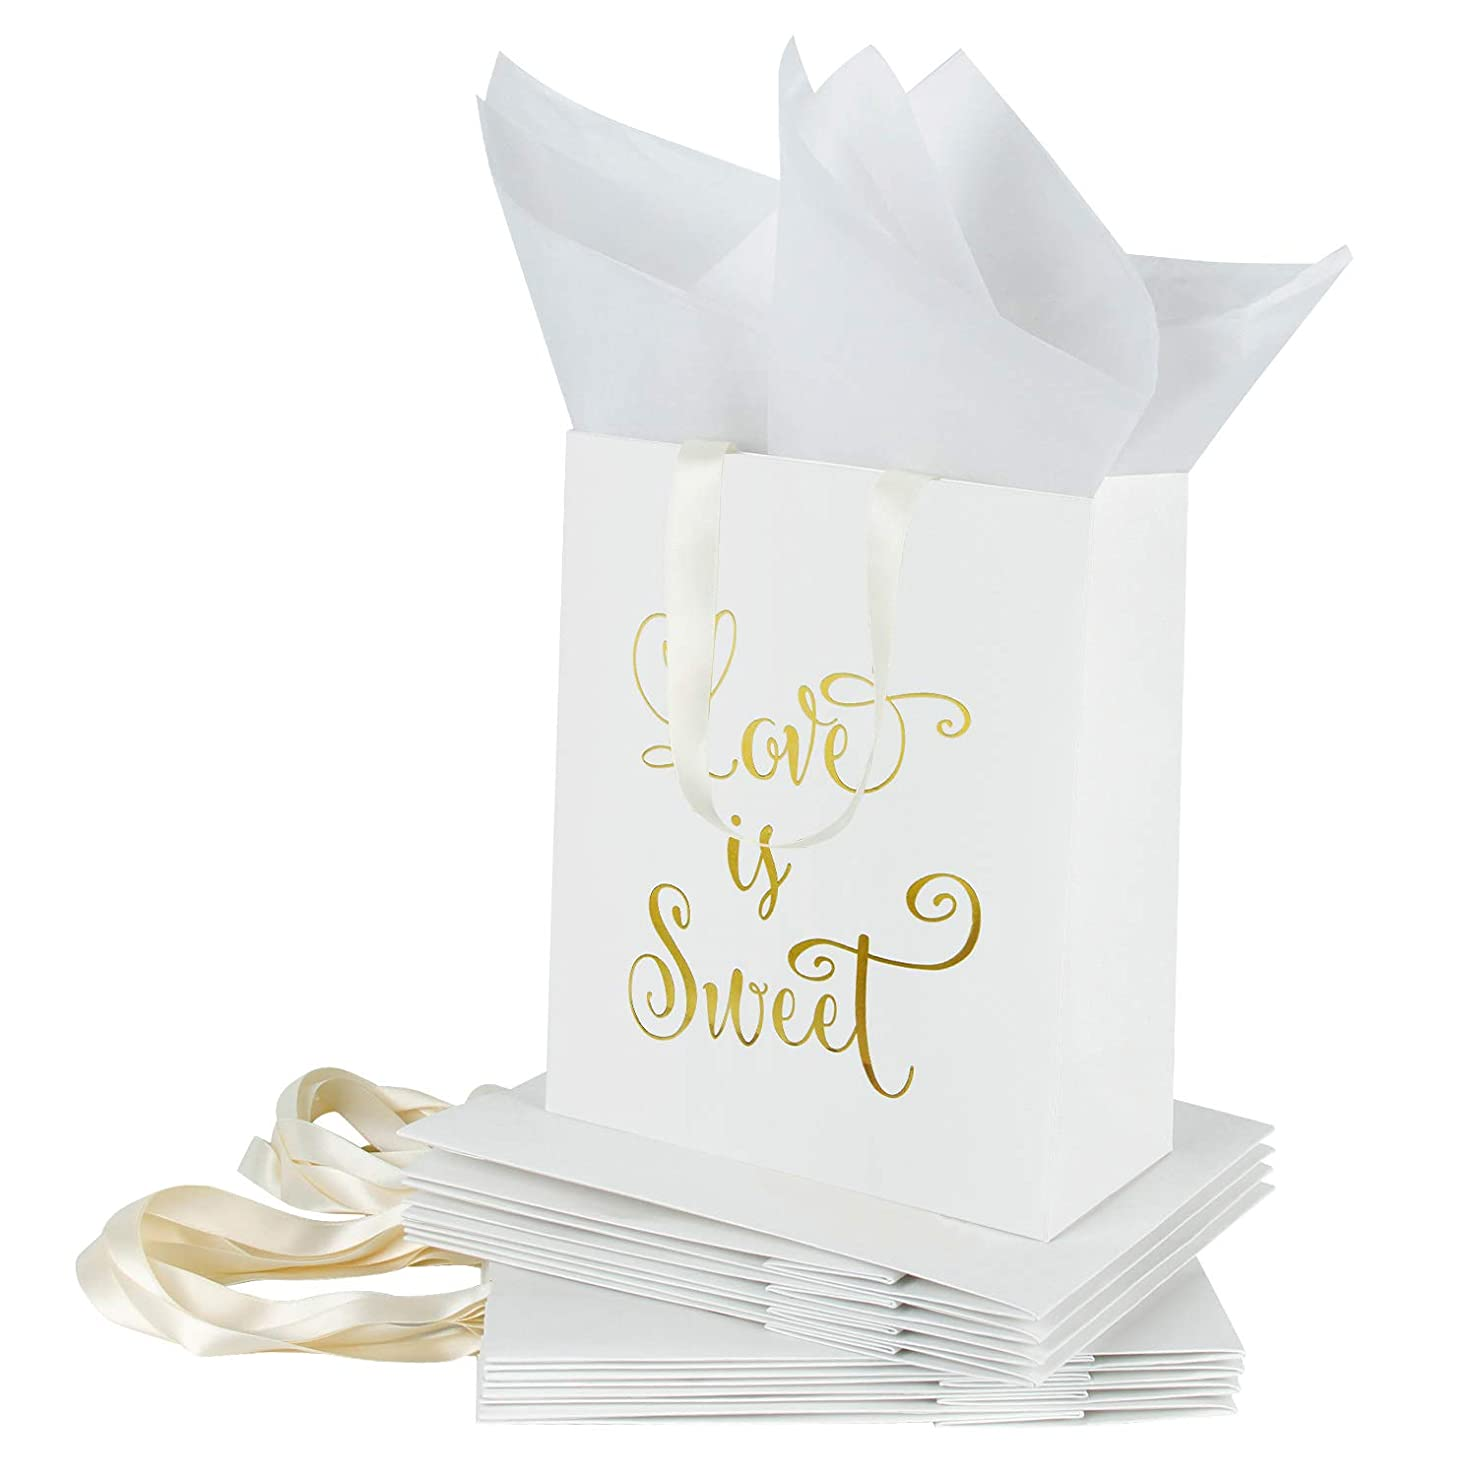 Loveinside Medium Kraft Gift Bags-Love is Sweet Gold Foil White Paper Gift Bag with Tissue Paper - Wedding,Birthday,Party Favor,Bridesmaids Gift-12Pack -8